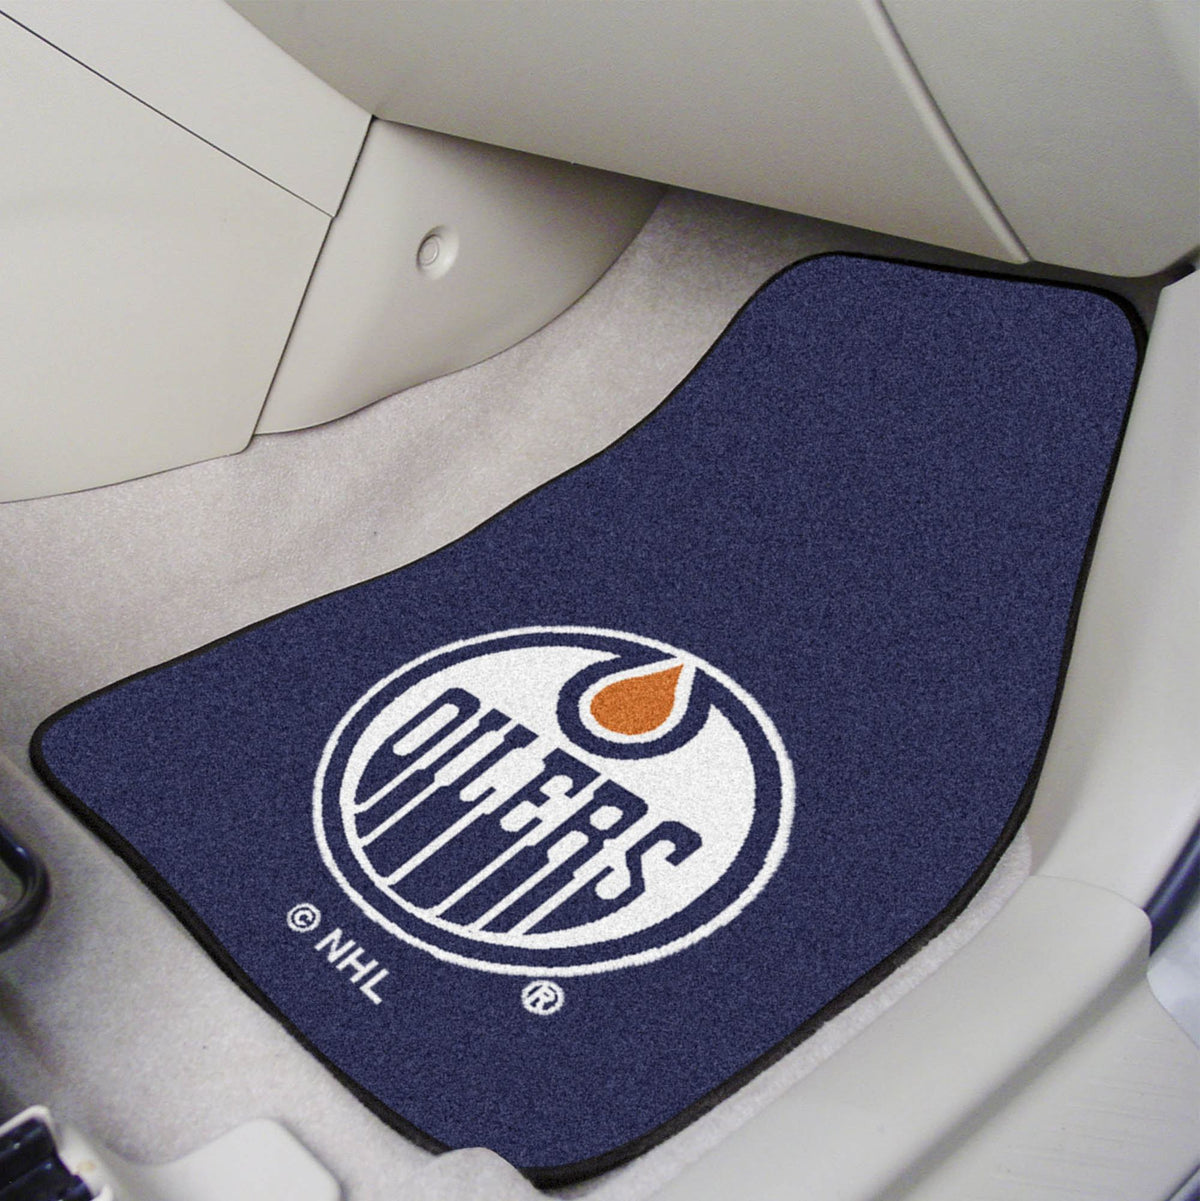 NHL - Carpet Car Mat, 2-Piece Set NHL Mats, Front Car Mats, 2-pc Carpet Car Mat Set, NHL, Auto Fan Mats Edmonton Oilers